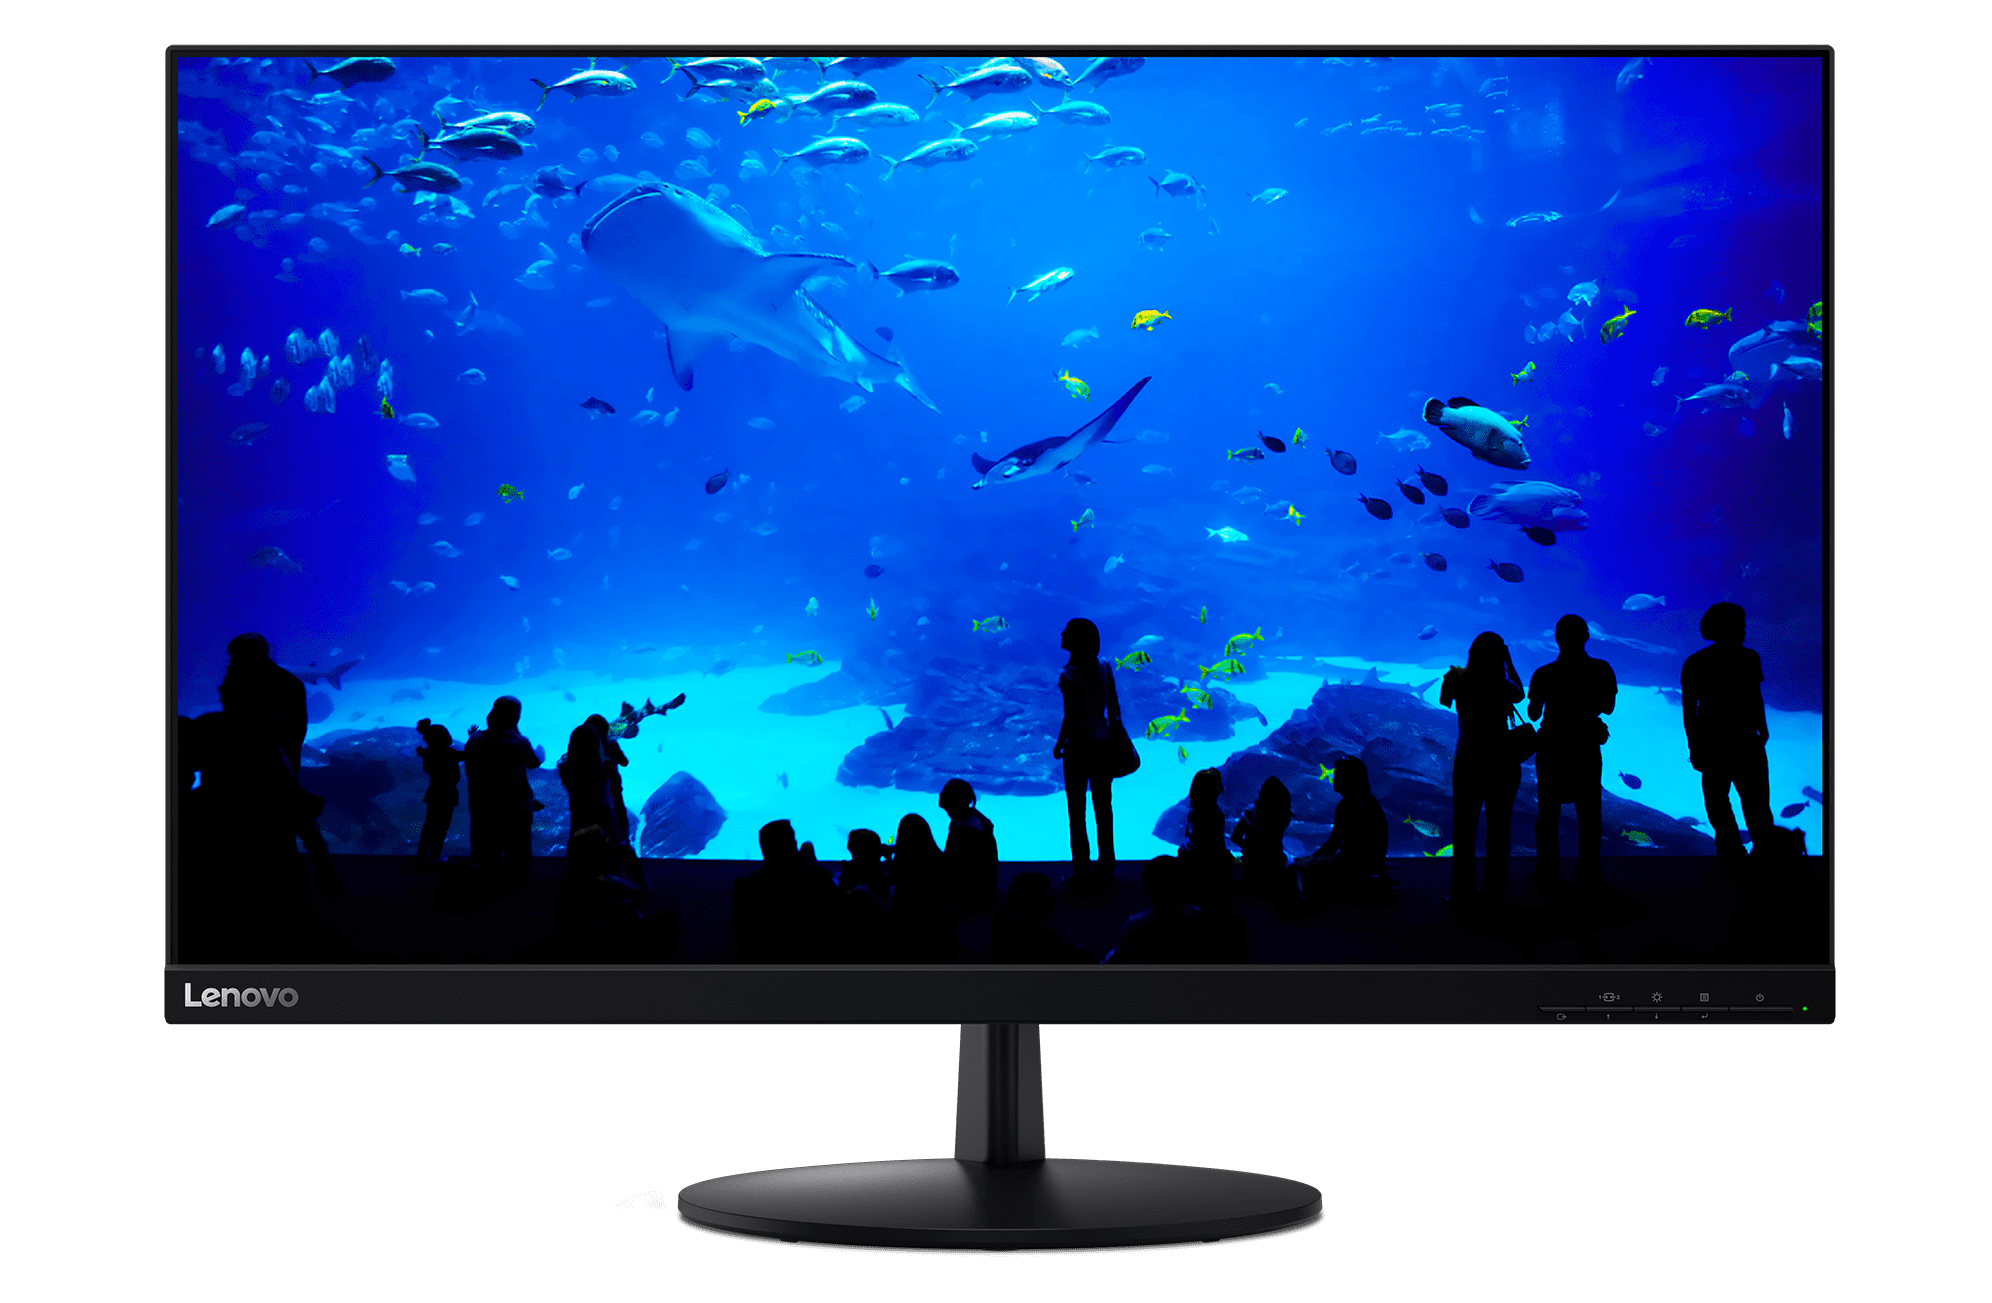 Offered in Raven Black, the Lenovo L28u Monitor sports more screen area than before.